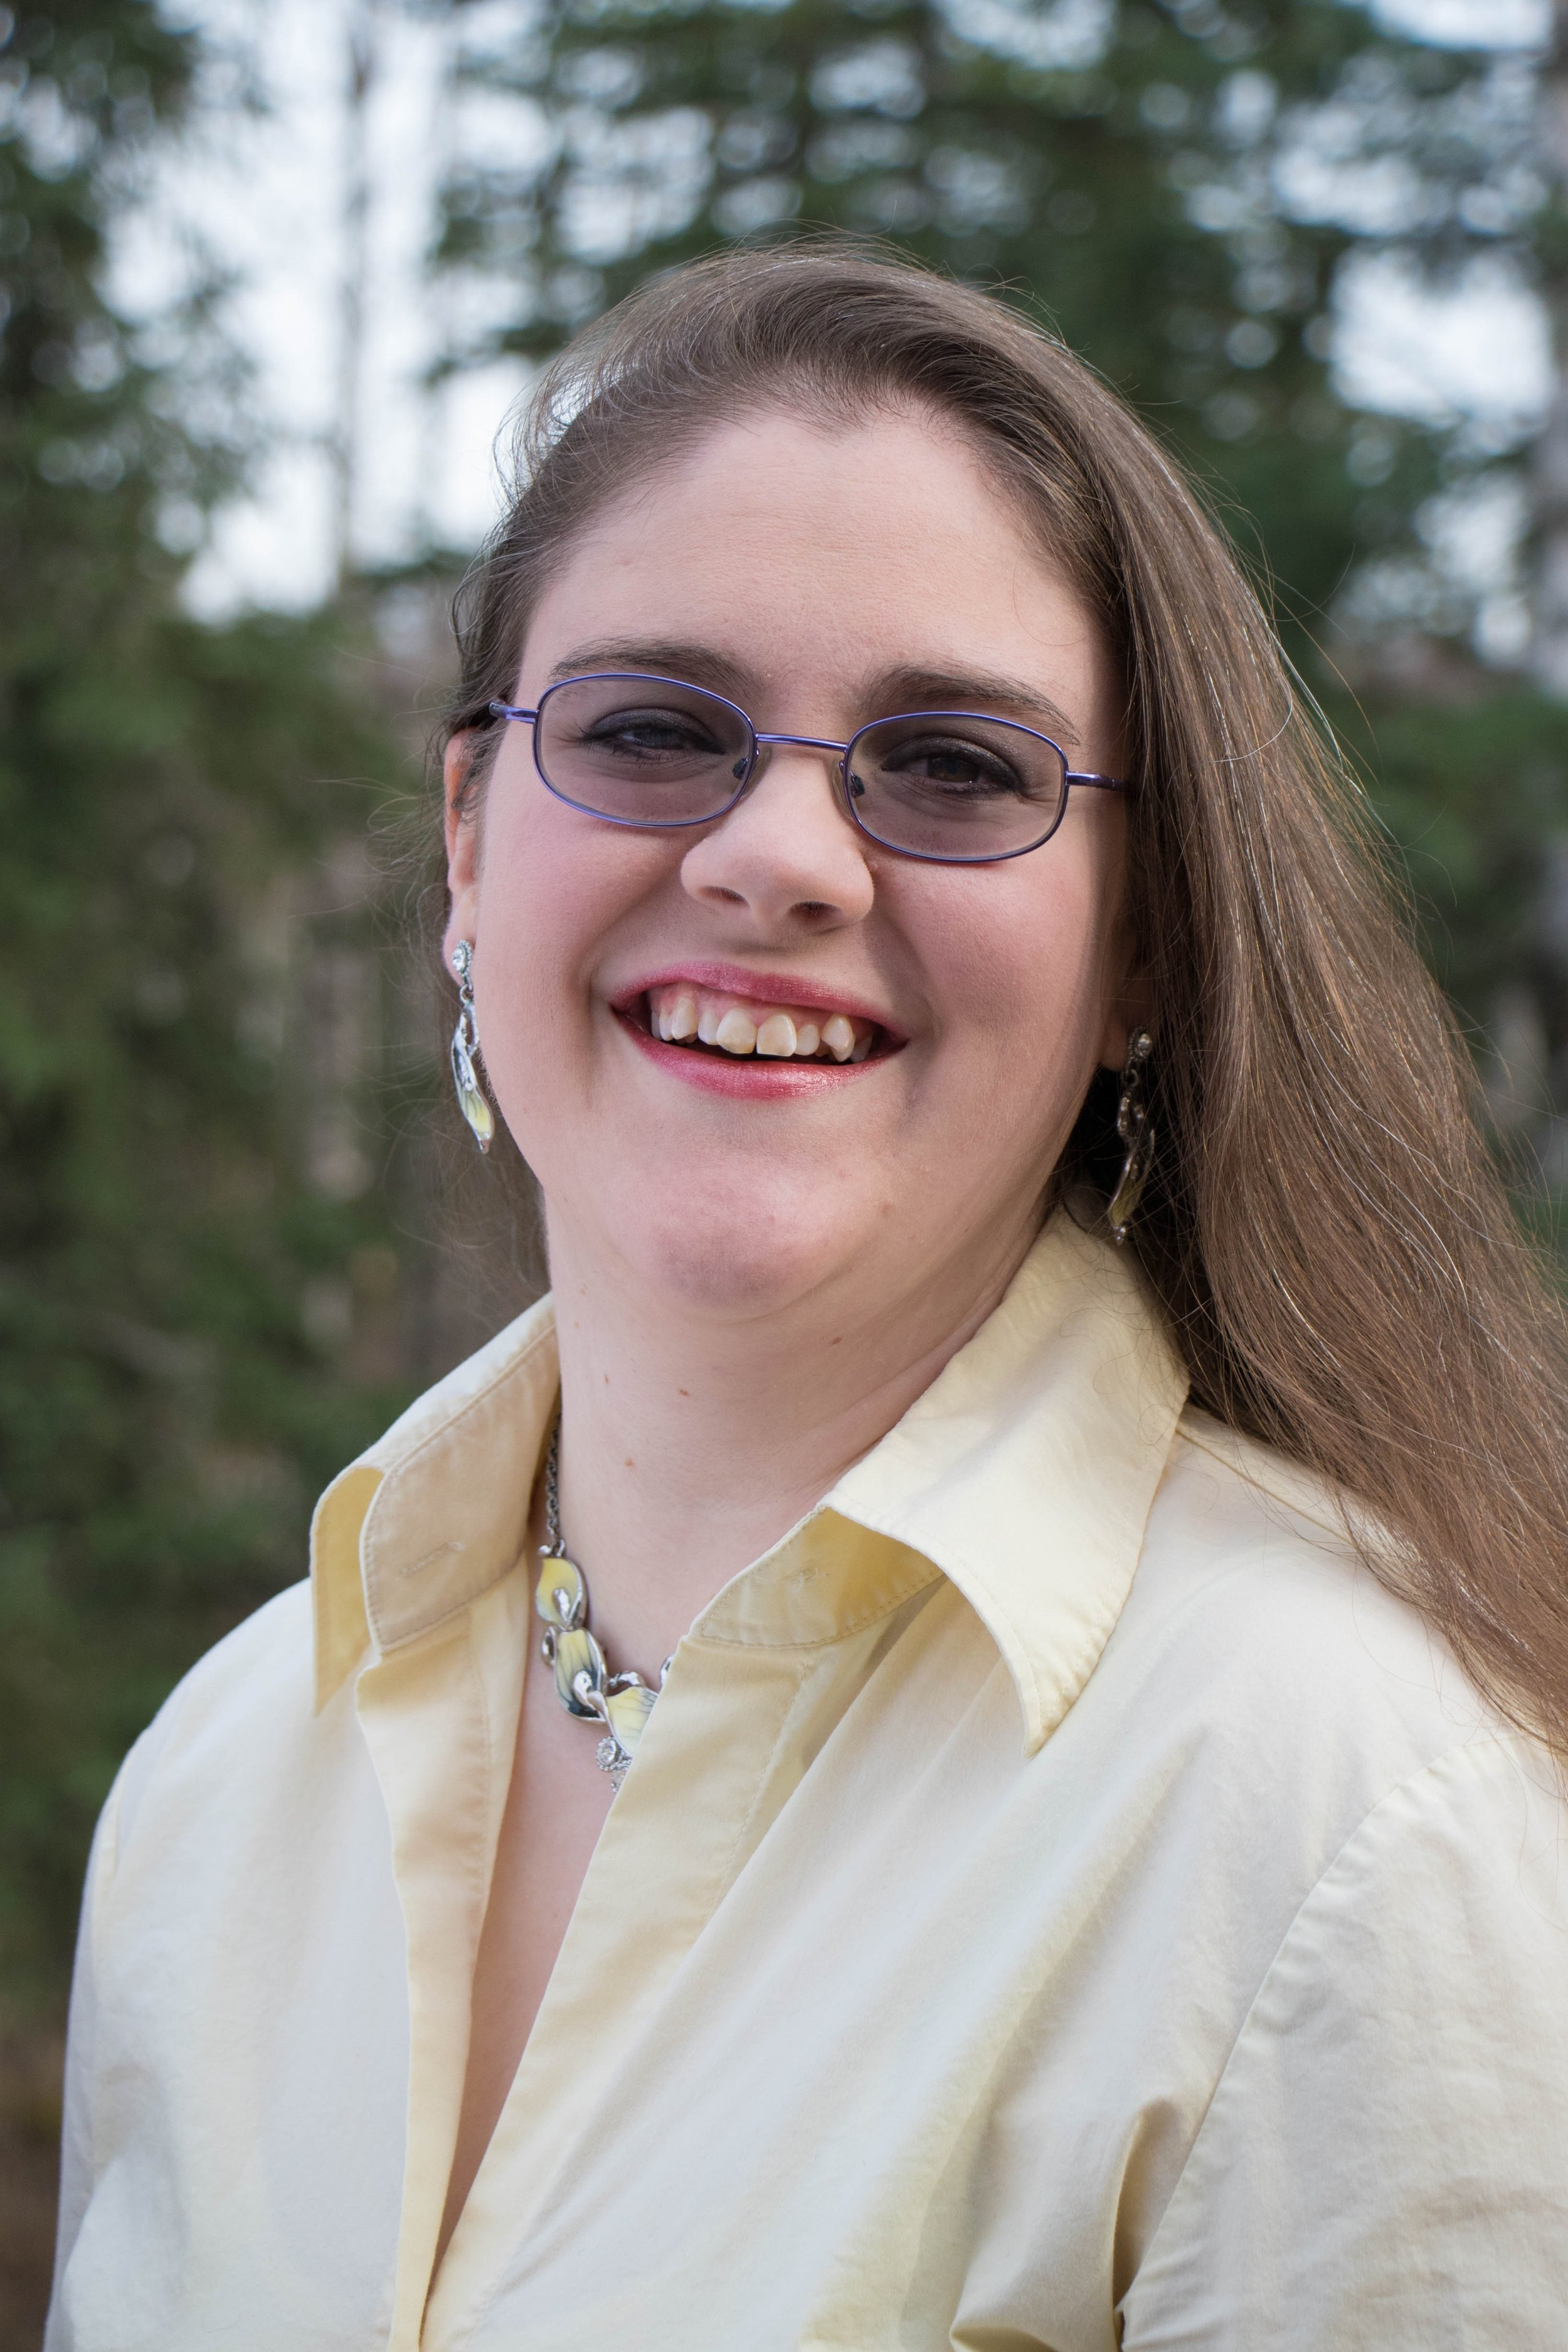 Author - Christiane was honored to be selected for the Alaska Writers Guild's 2018 Lin Halterman Memorial Grant for use in publishing the first novel in The Infinitus Saga. In August 2019, she received an honorable mention in the Alaska Writers Guild's Quarterly Writing Contest for Fiction on a small segment of the upcoming novel, Infinitus. That excerpt is available for your reading pleasure as a sneak peek in the back of The Global Fellowship novelette - now available for pre-order on Amazon!